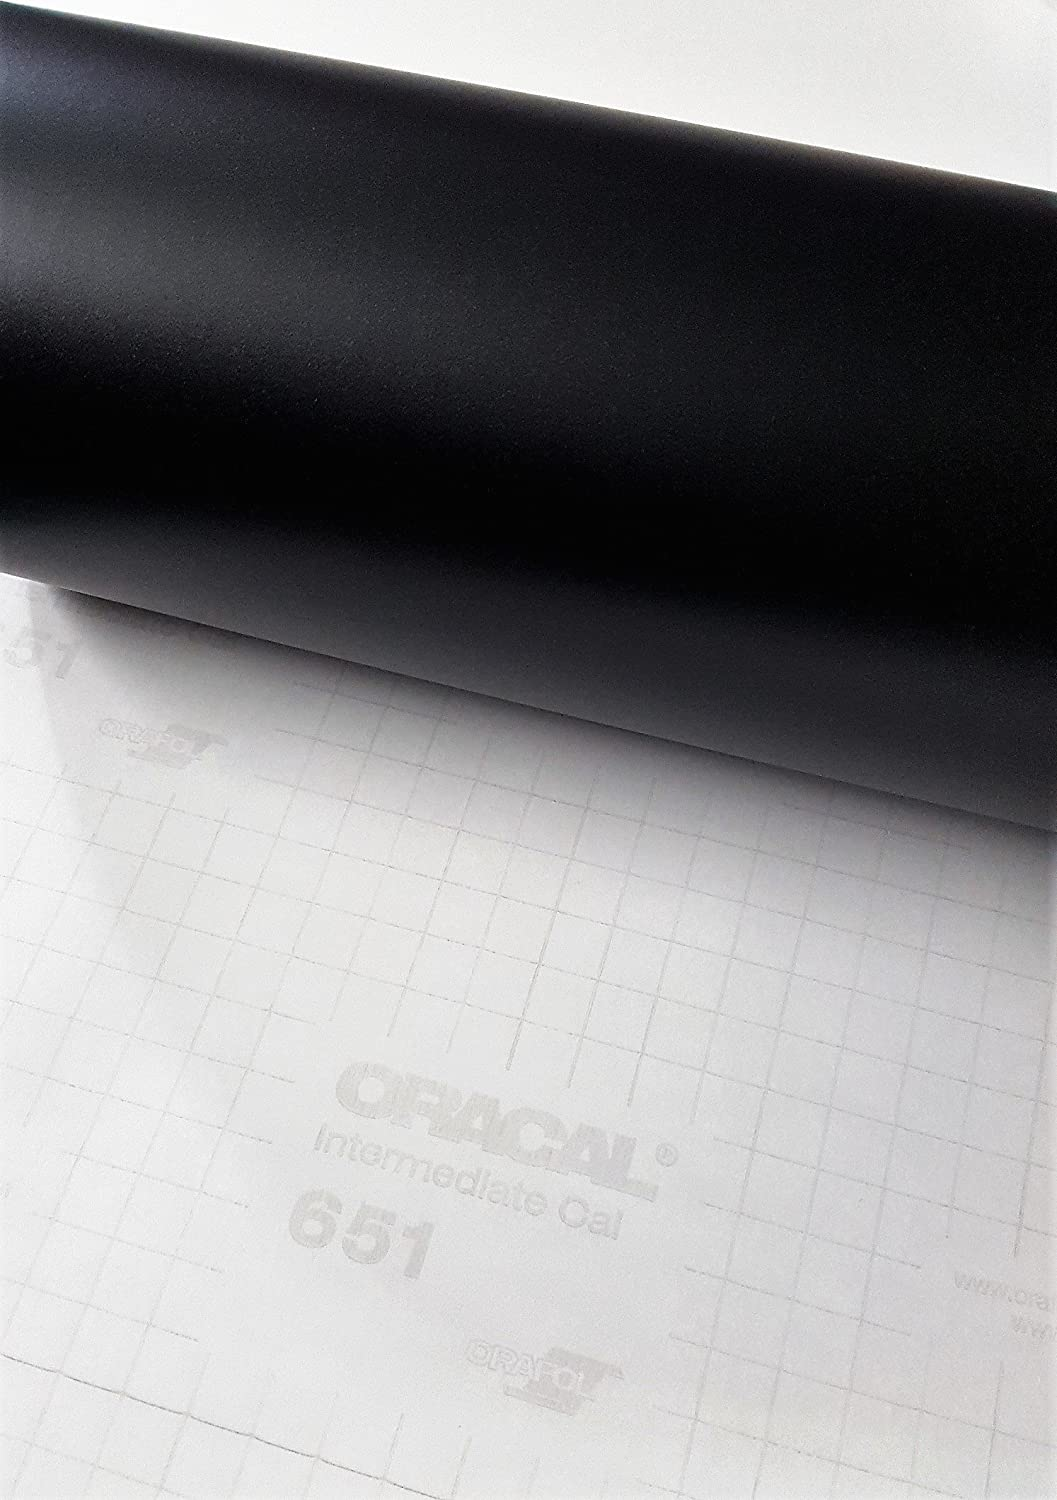 Roll of Oracal 651 Matte Black Vinyl for Craft Cutters and Vinyl Sign Cutters (12 x6FT) Original Oracal 61